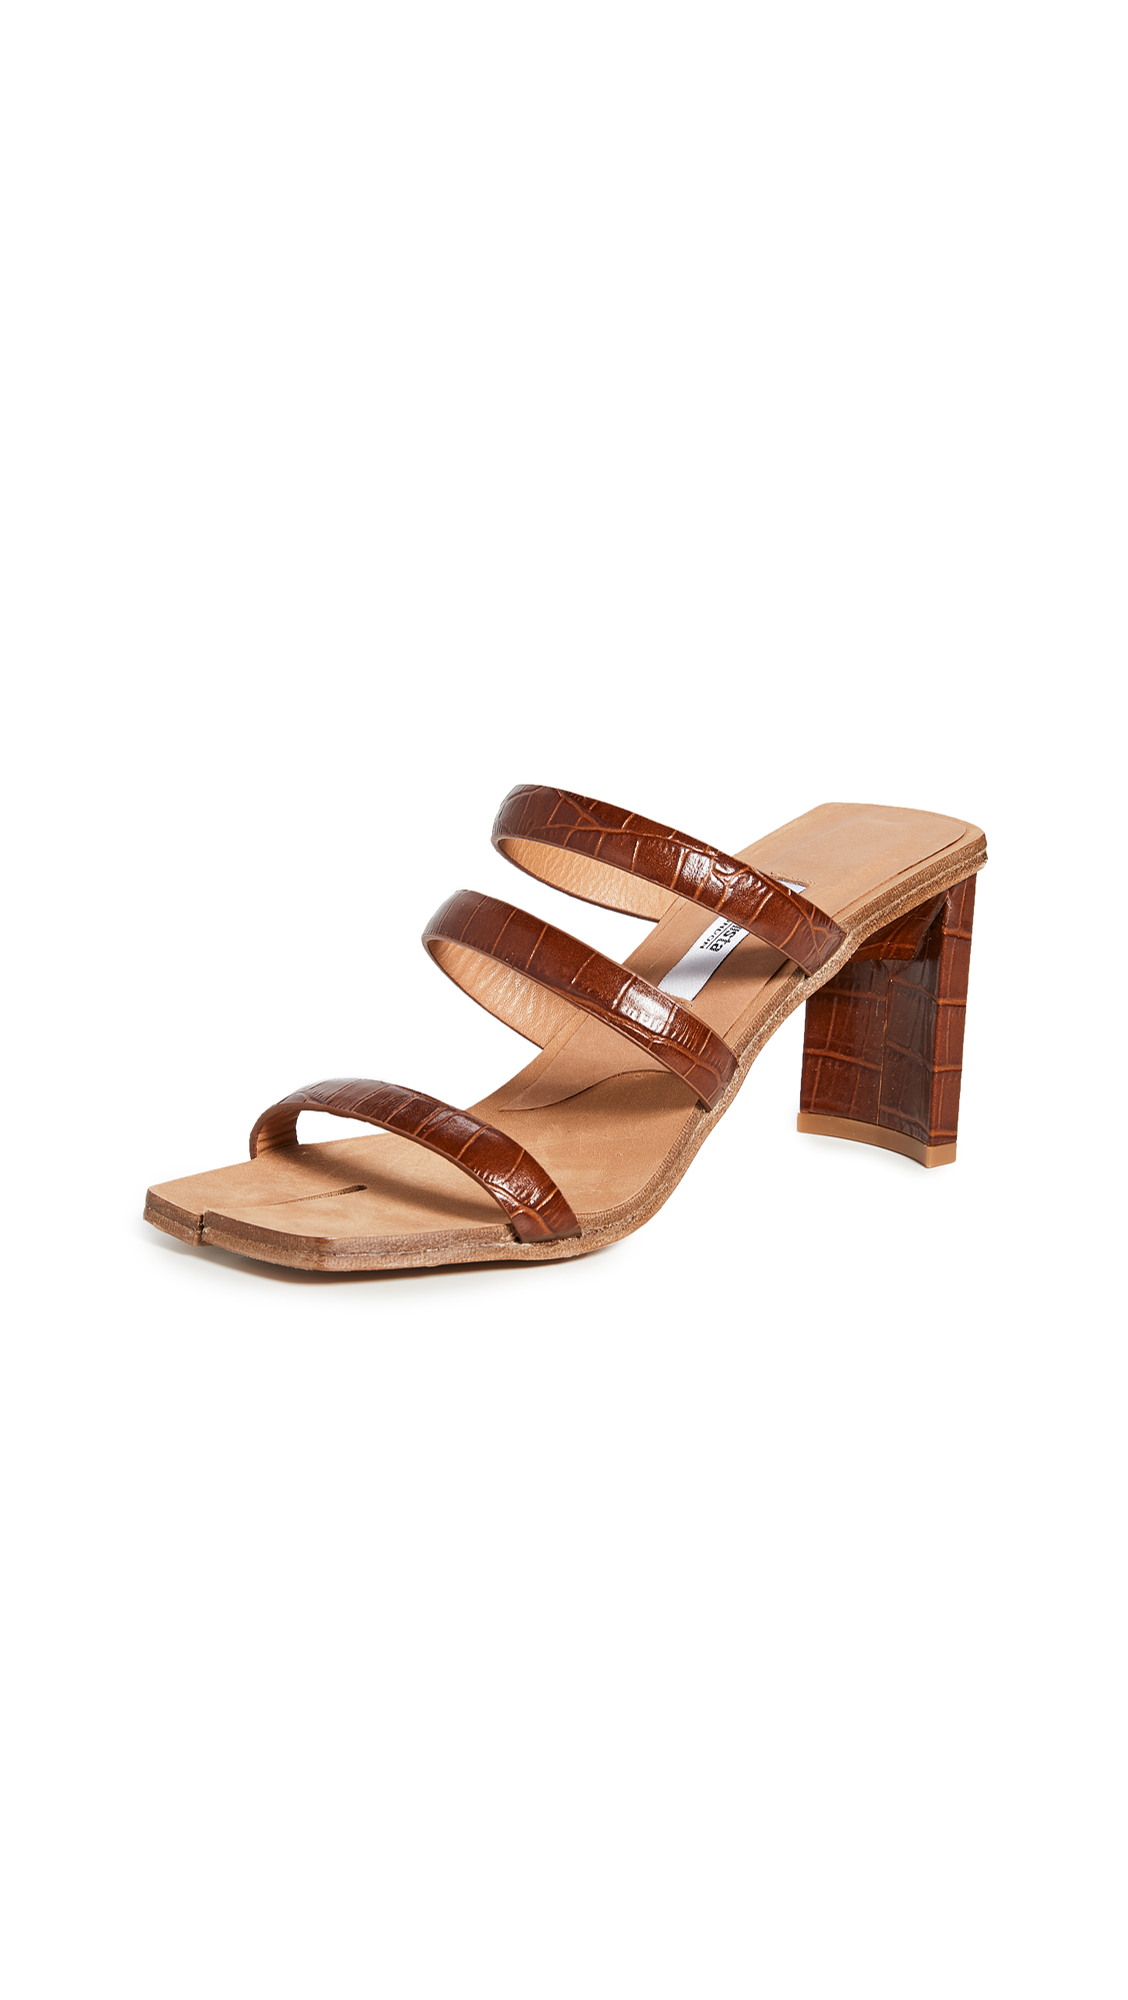 Buy Miista Joanne Clay Croc Sandals online, shop Miista